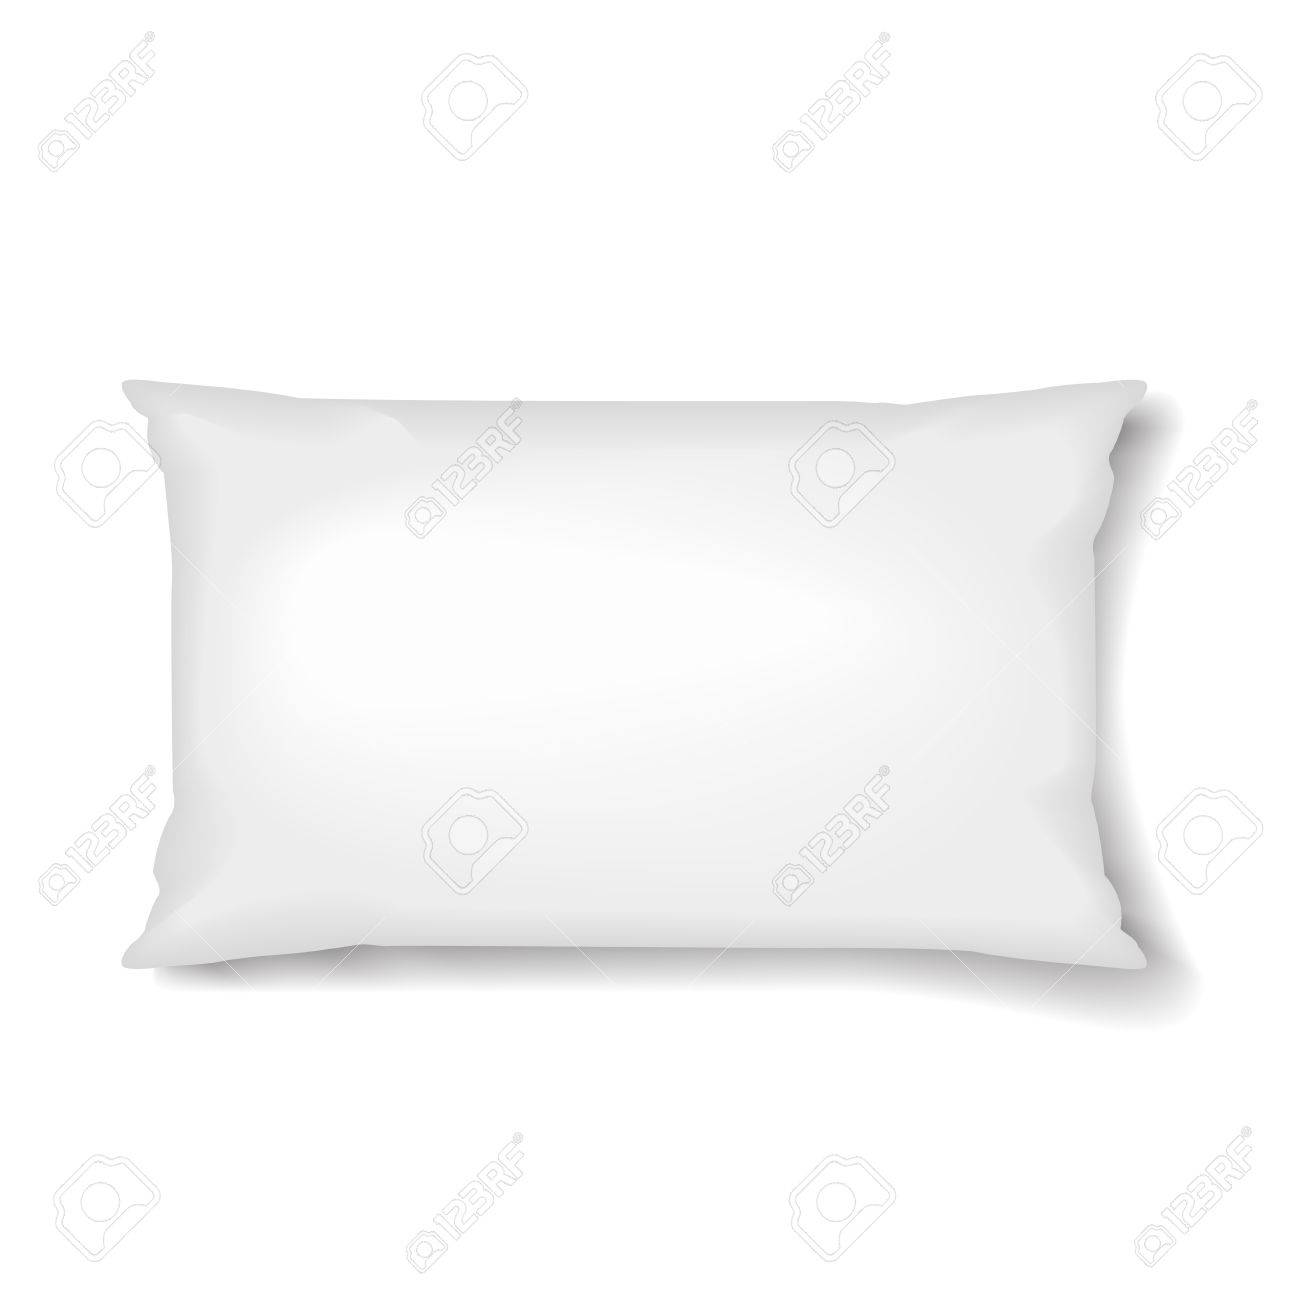 rectangular pillow pillow template isolated on white background